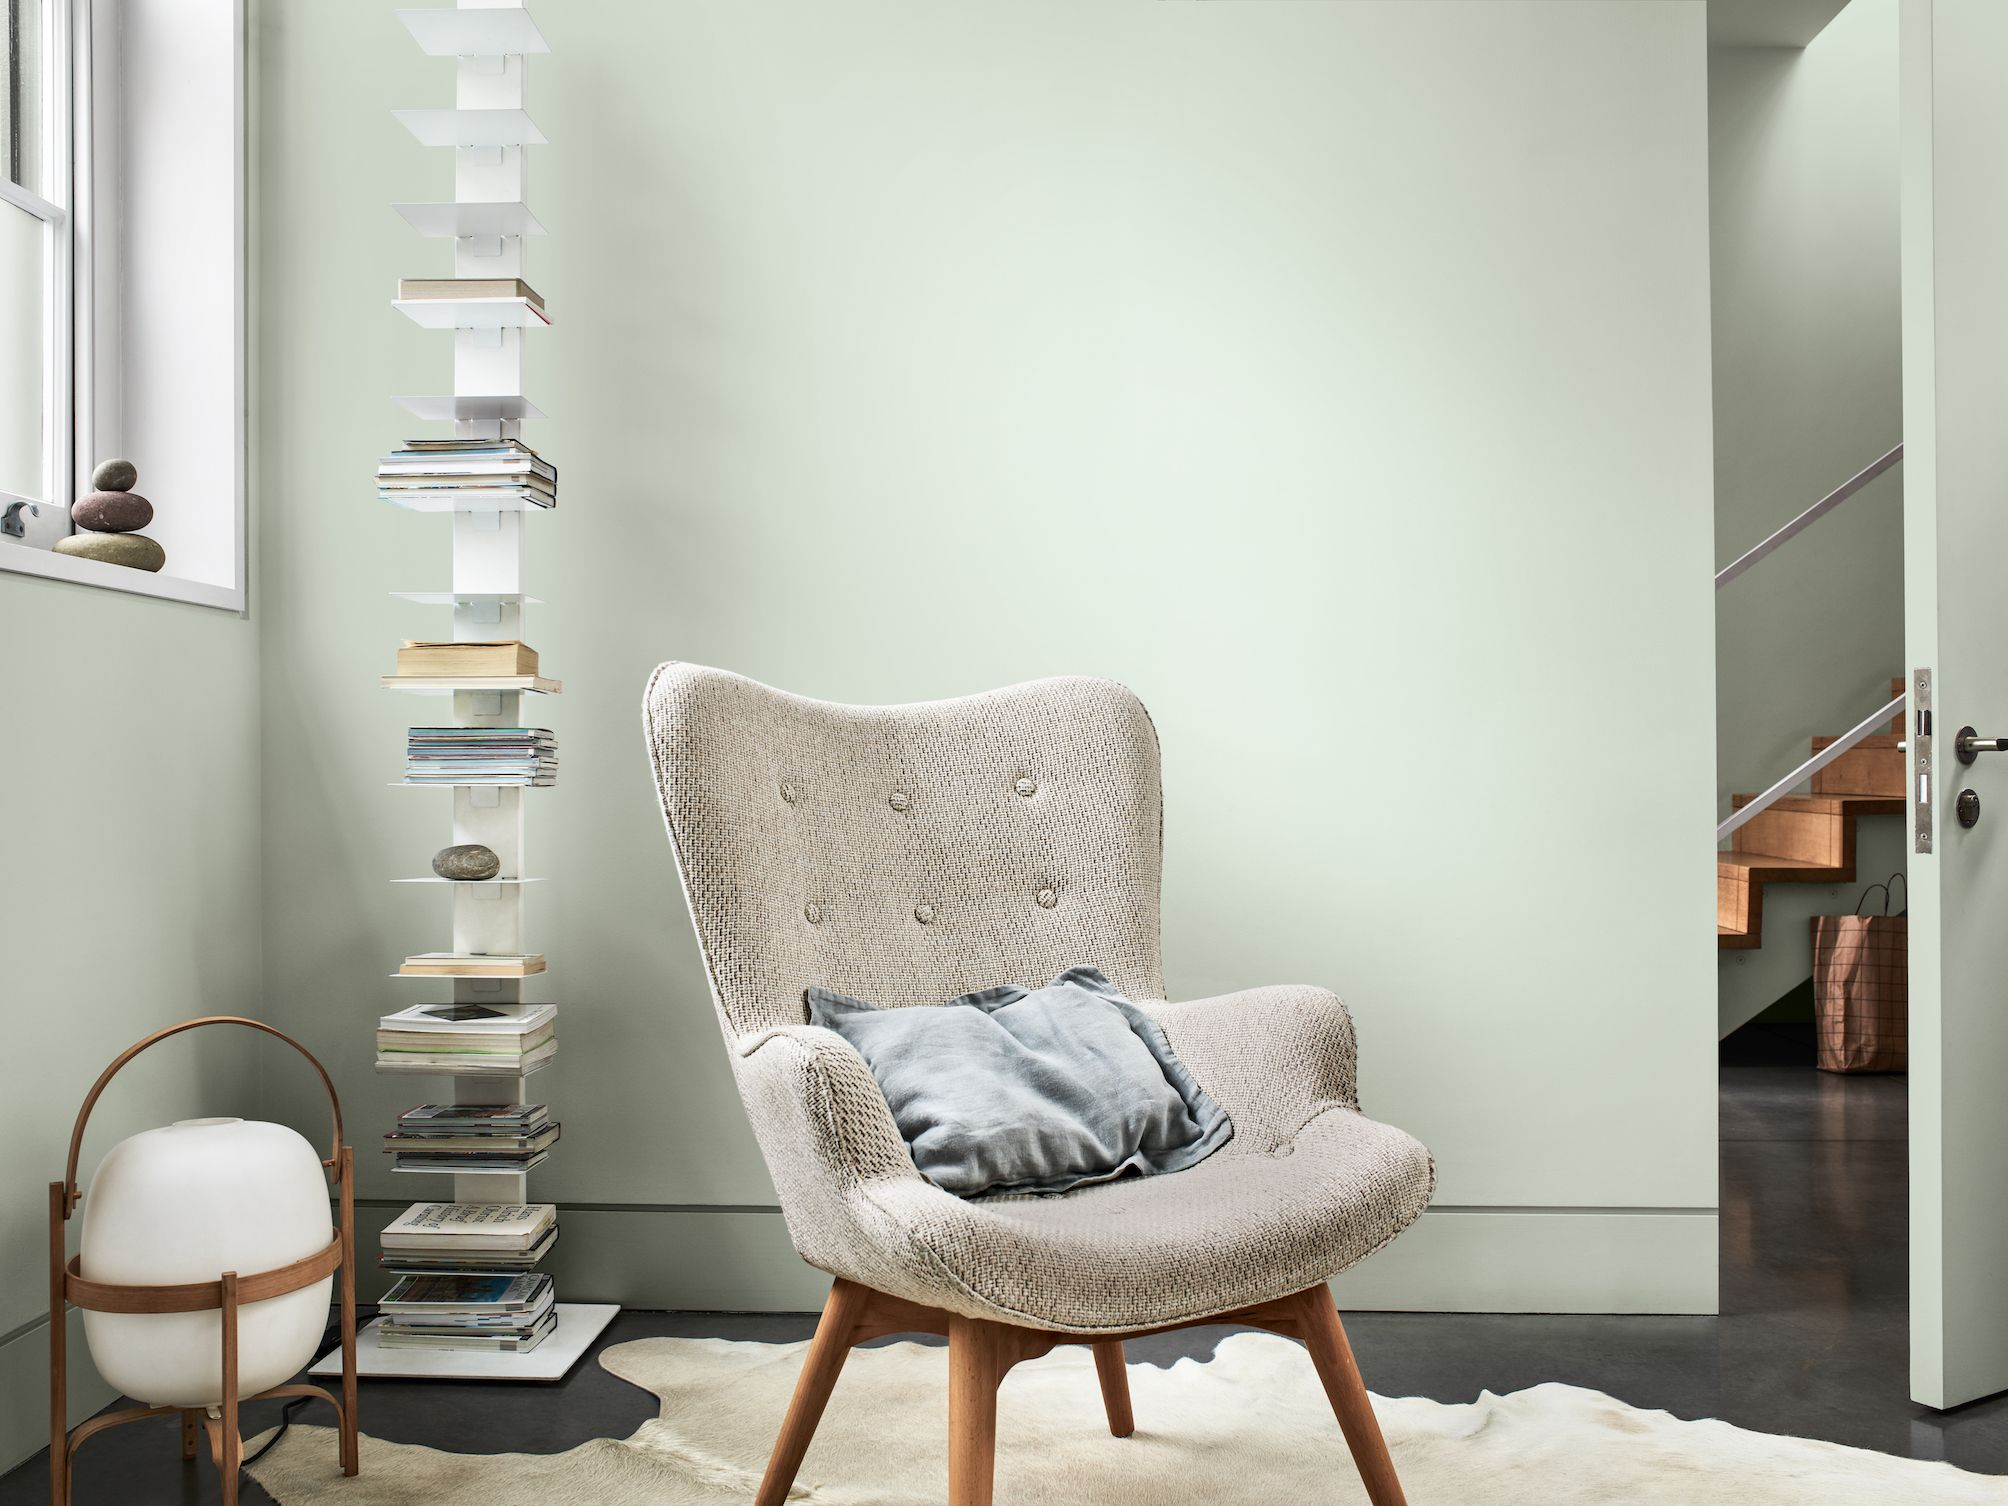 Dulux has named Tranquil Dawn as its Colour of the Year for 2020